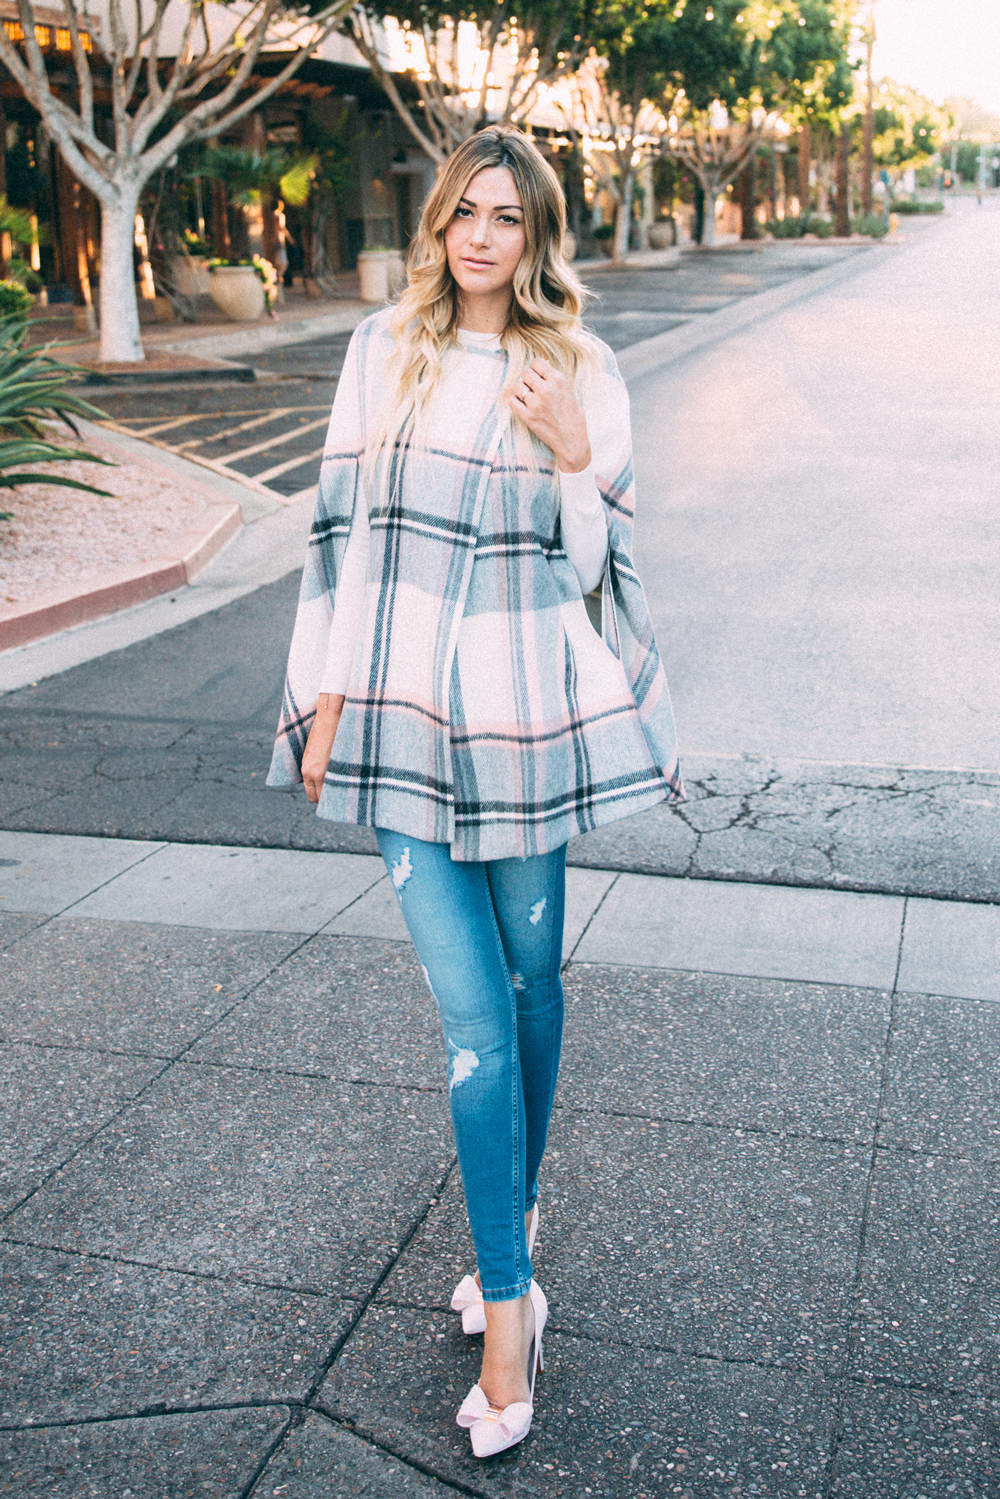 Dash of Darling styles a blush pink plaid cape by Ted Baker with denim jeans and bow heels for a Fall outfit.